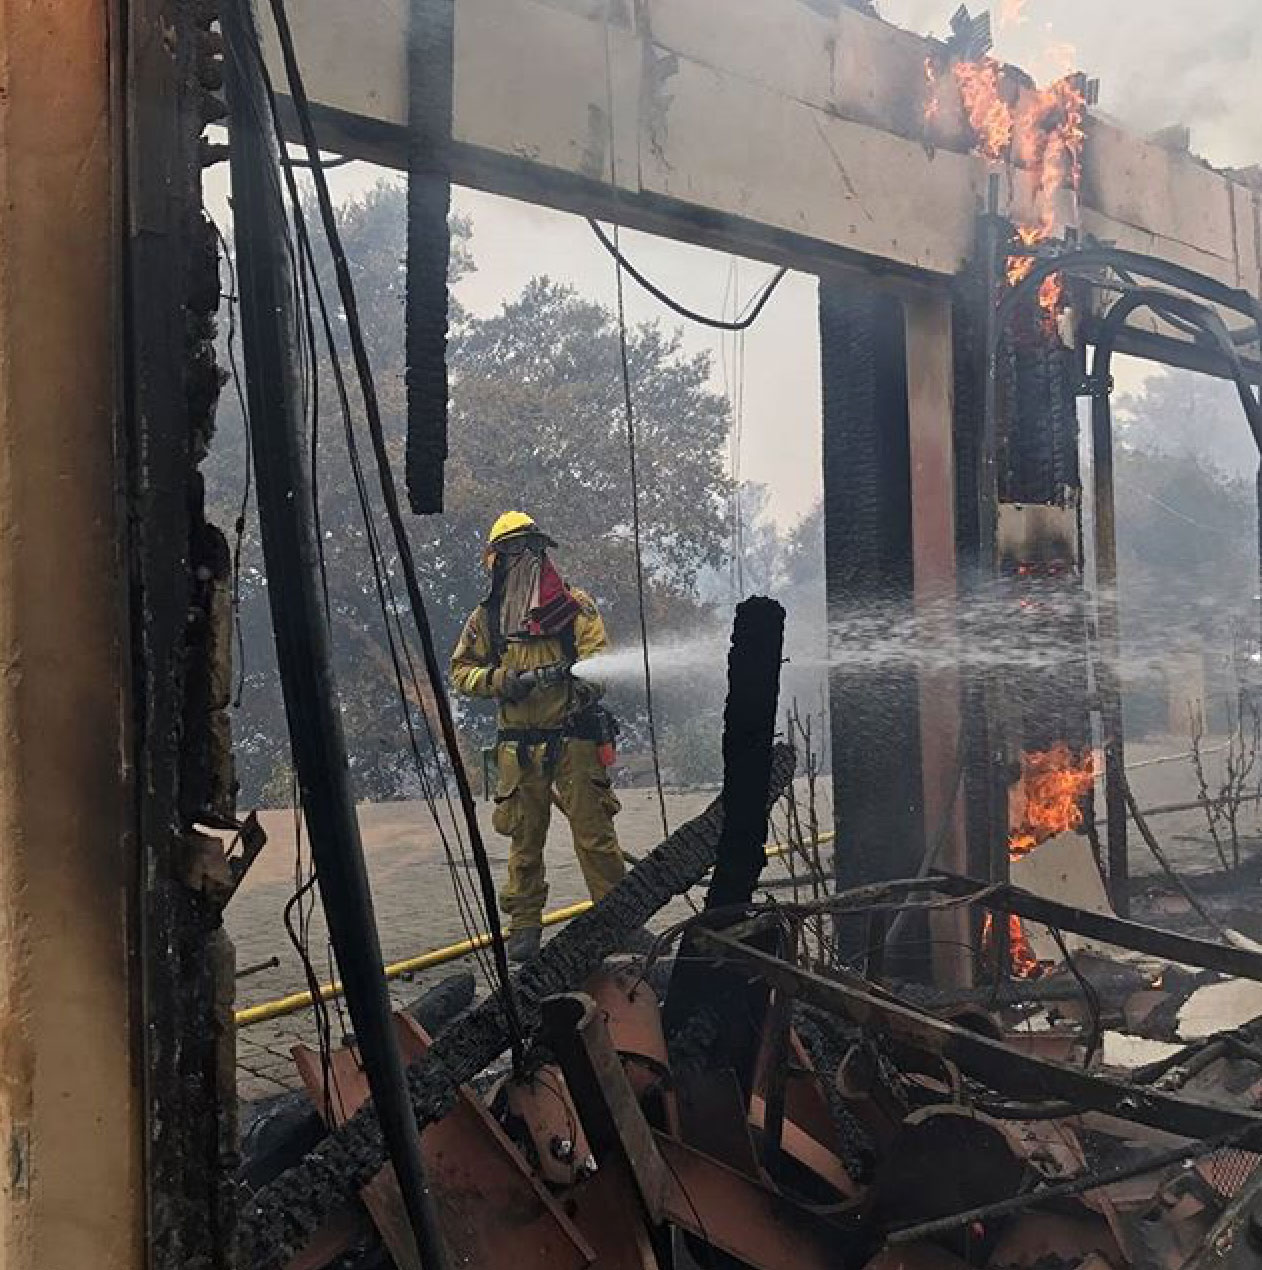 "<div class=""meta image-caption""><div class=""origin-logo origin-image none""><span>none</span></div><span class=""caption-text"">CalFire shared this photo of a firefighter in action. (calfire/Instagram)</span></div>"